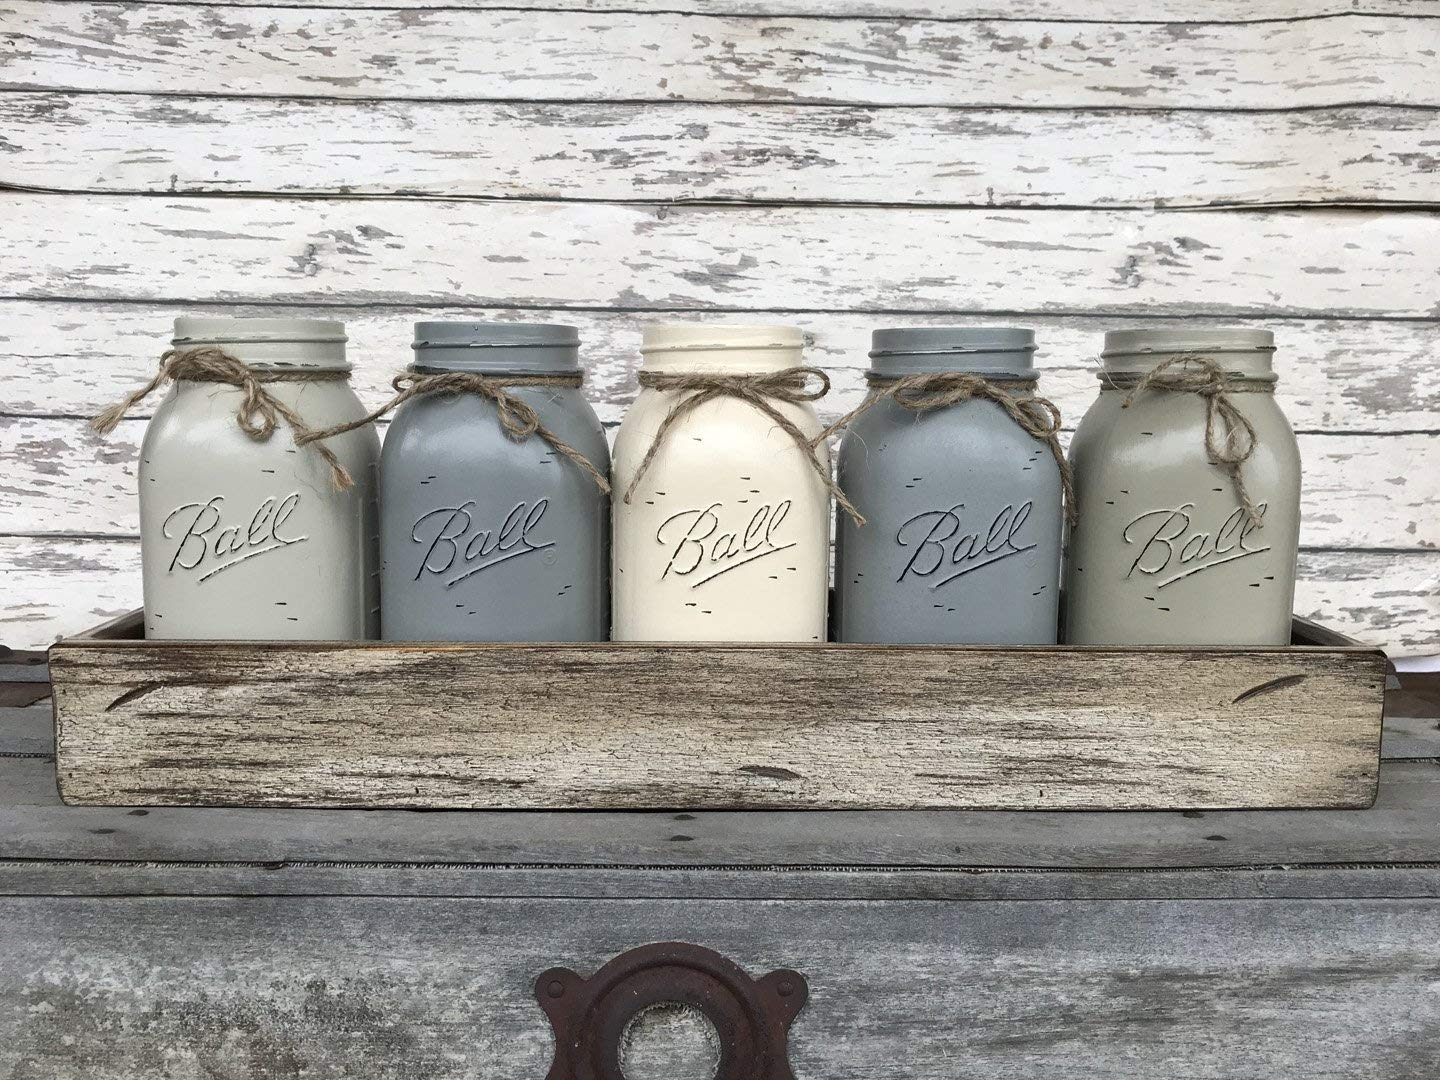 Mason Canning Jar Kitchen Farmhouse Table Centerpiece with 5 Hand Painted Ball QUART Jars in Distressed Wood Tray rusty handles *Antique White Red Brown Blue -BEAUTIFUL Hydrangea Flowers are optional by Wooden Hearts (Image #2)